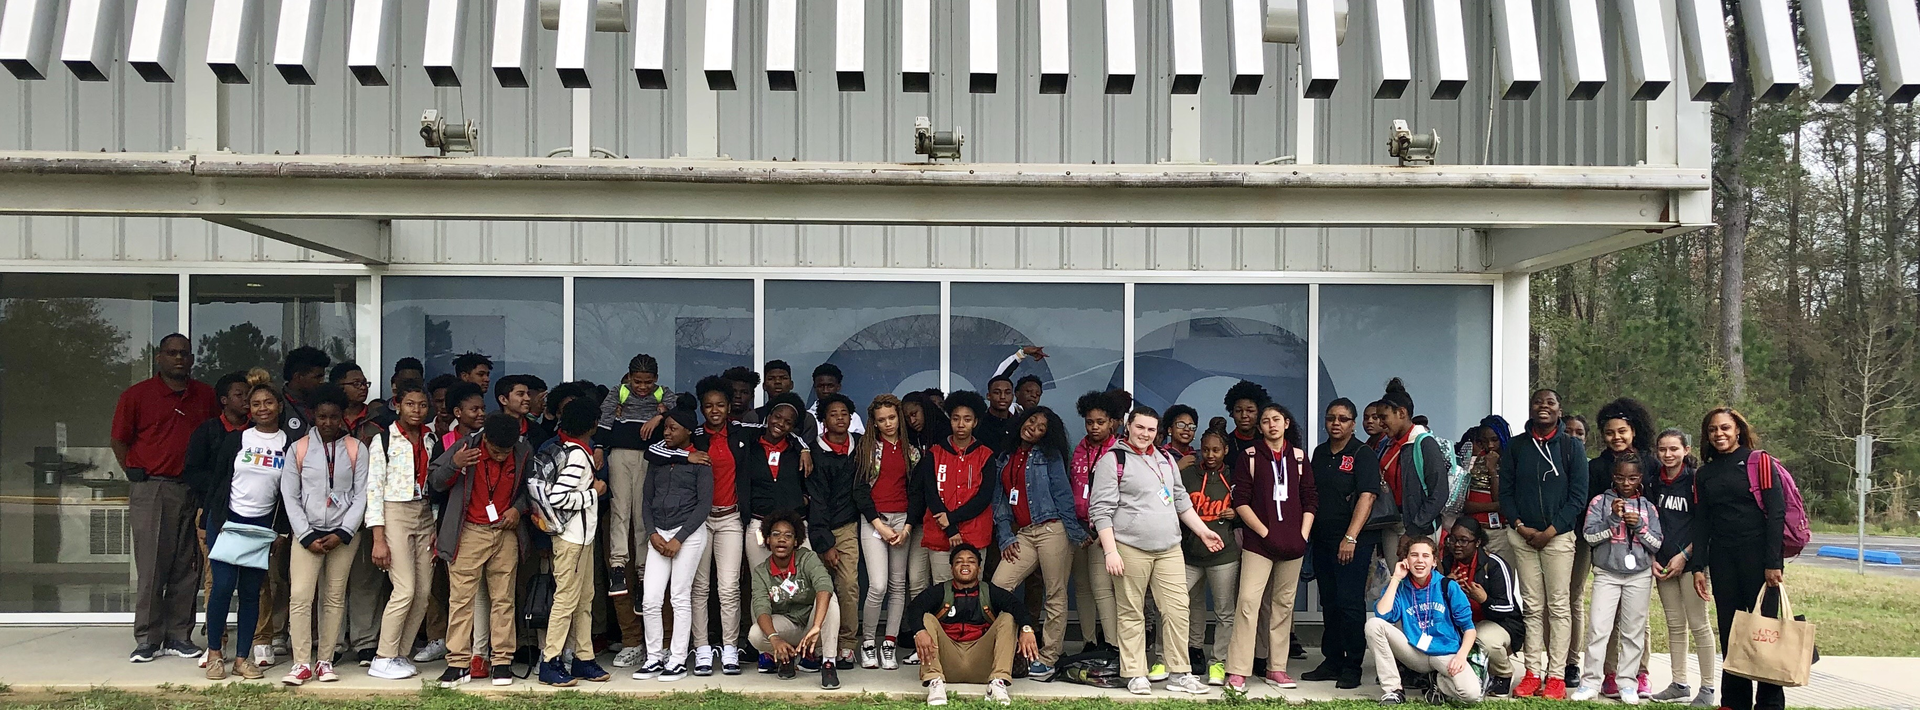 photo of the Baker Middle science students field trip to LIGO, the Laser Interferometer Gravitational-Wave Observatory.